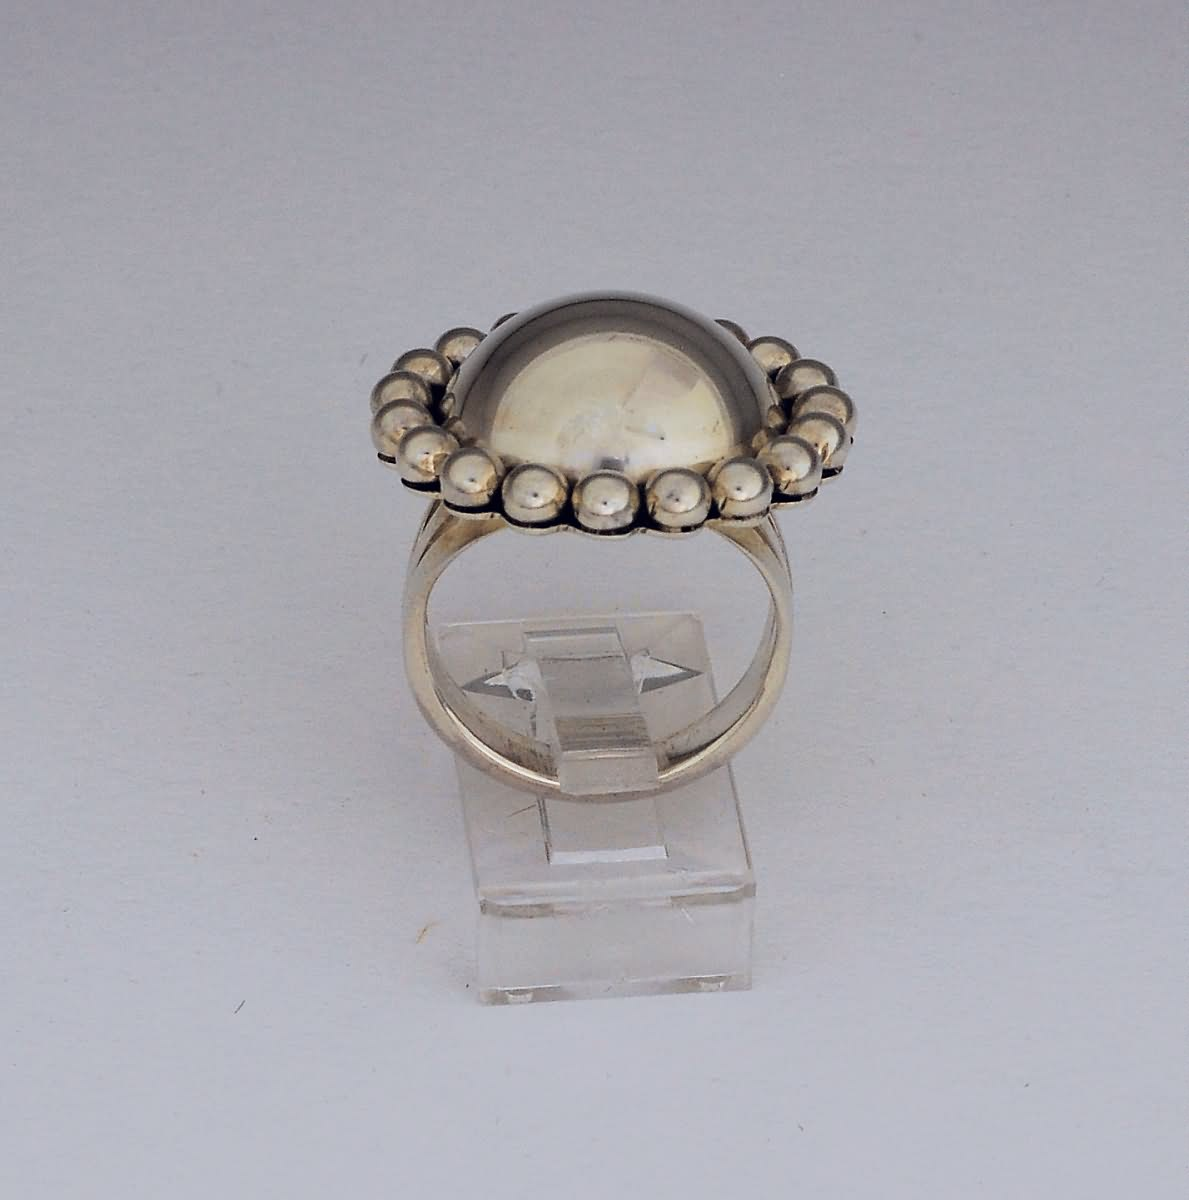 Large Dome with Dots ring